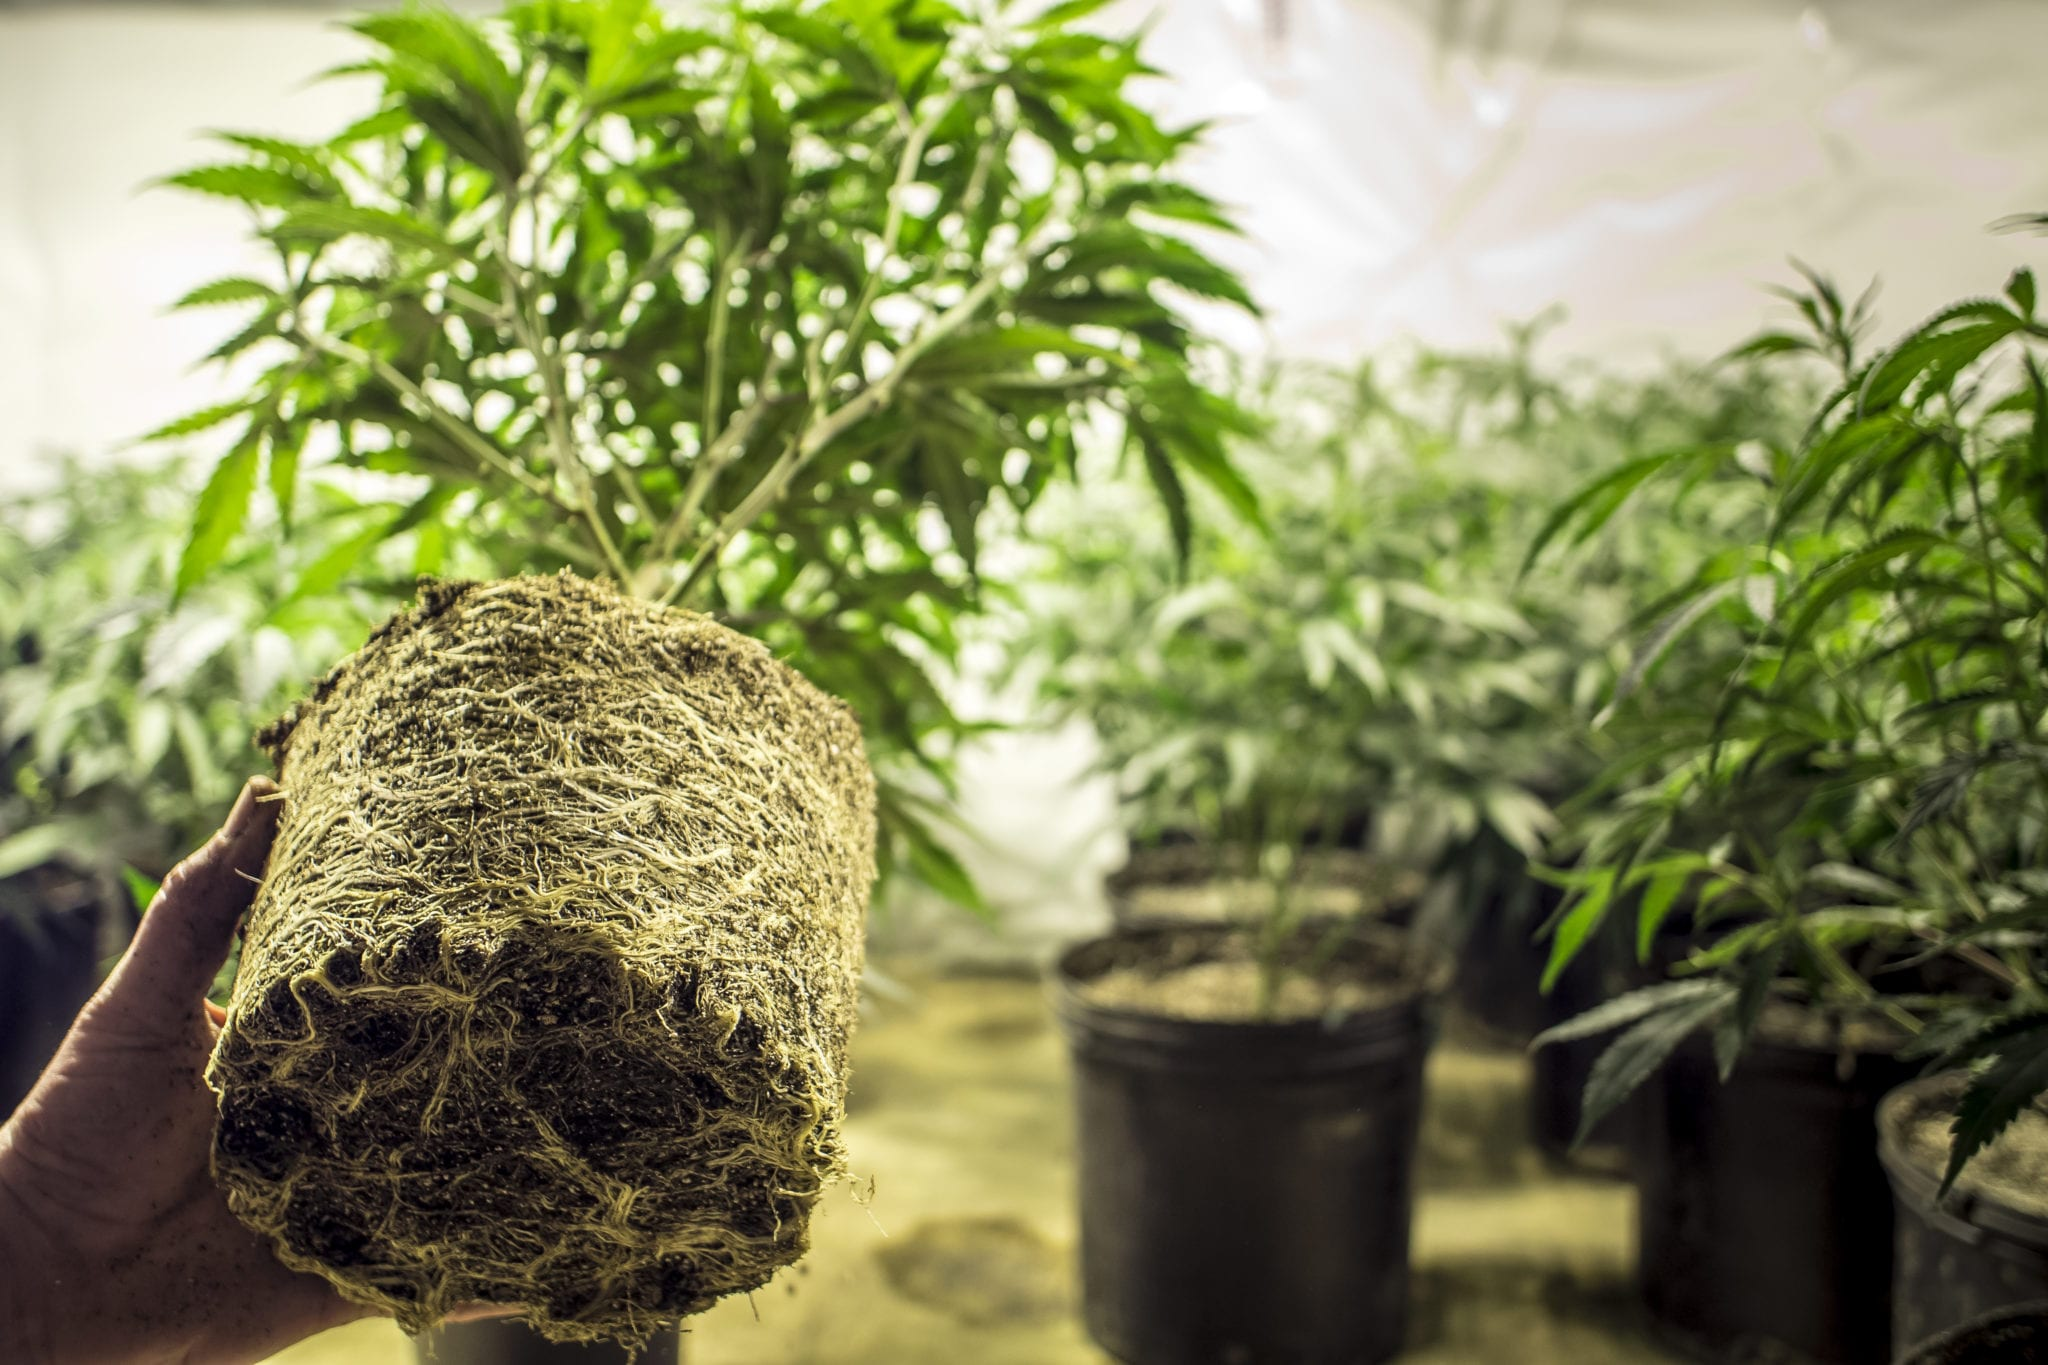 Vacant Ontario Auto Parts Plant Given Second Life With New JWC Cannabis Cultivation Facility